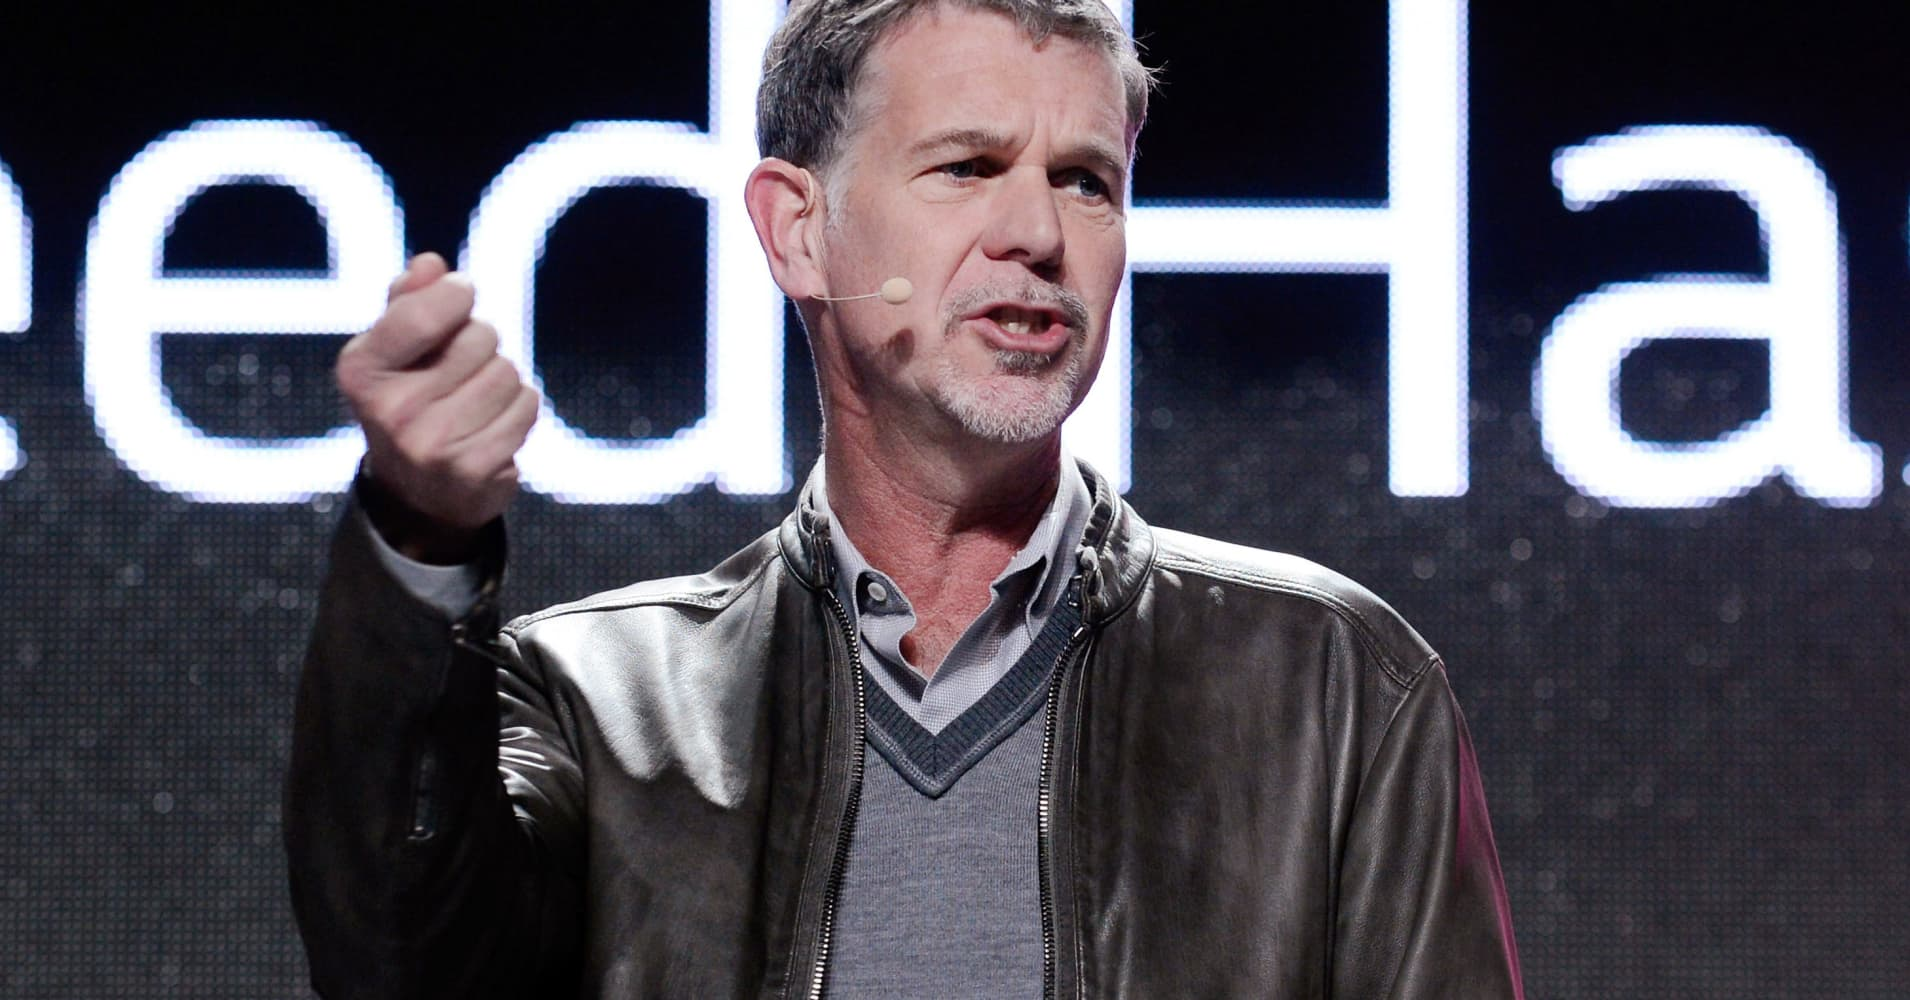 Netflix market cap hits $100 billion for first time after adding more subscribers than expected (cnbc.com)